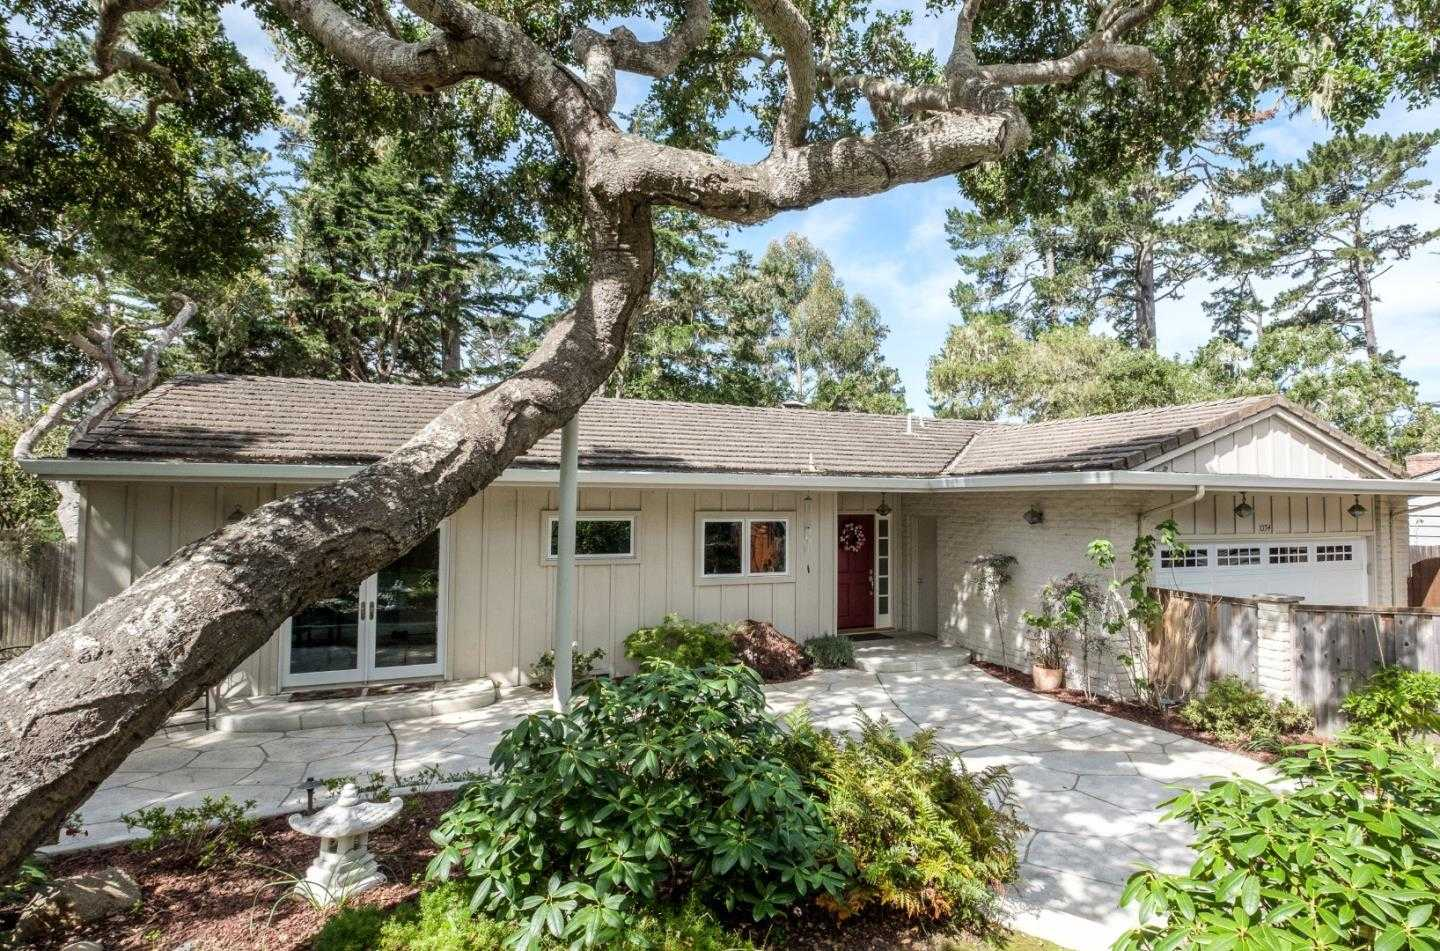 $1,150,000 - 3Br/2Ba -  for Sale in Pebble Beach